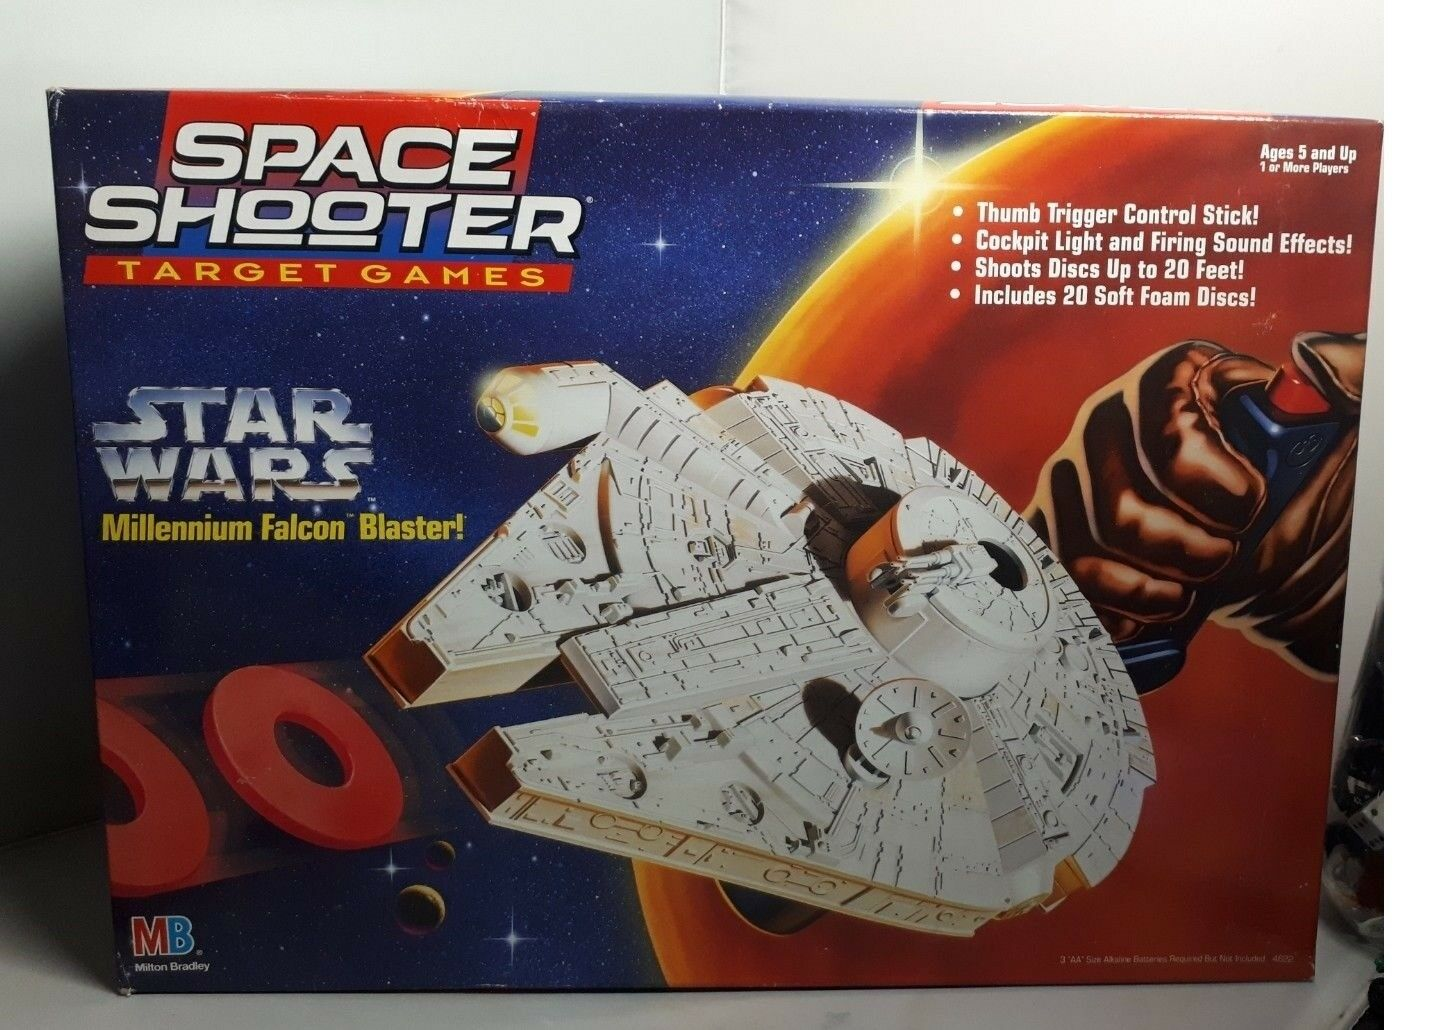 Star Wars Millennium Falcon Blaster Space Shooter Target Games 1996 MB Hasbro